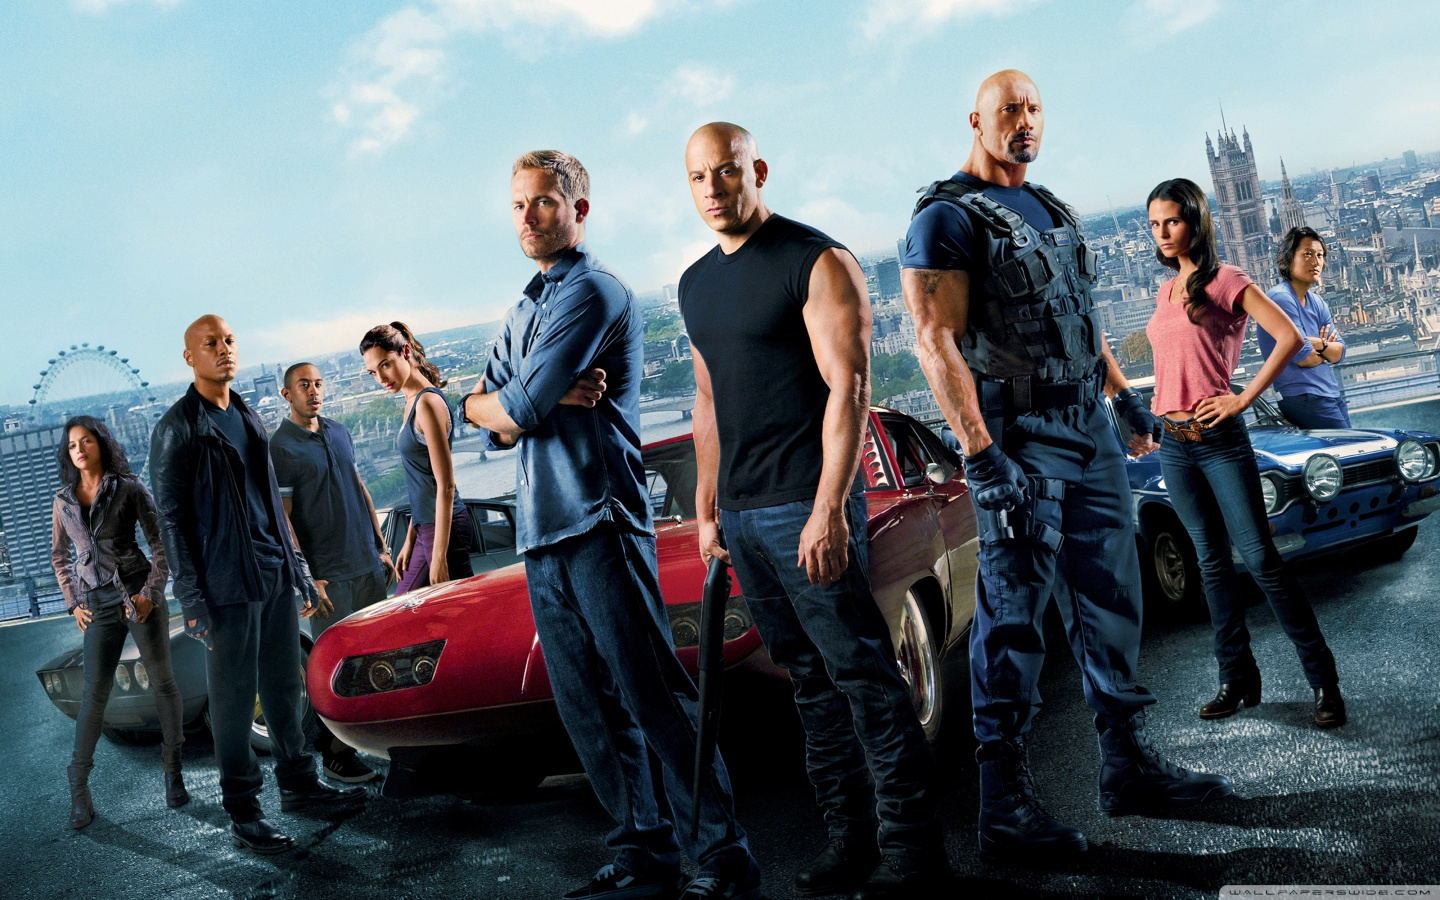 2013-06-07-fast_and_furious_6_movie_2013wallpaper1440x900.jpg